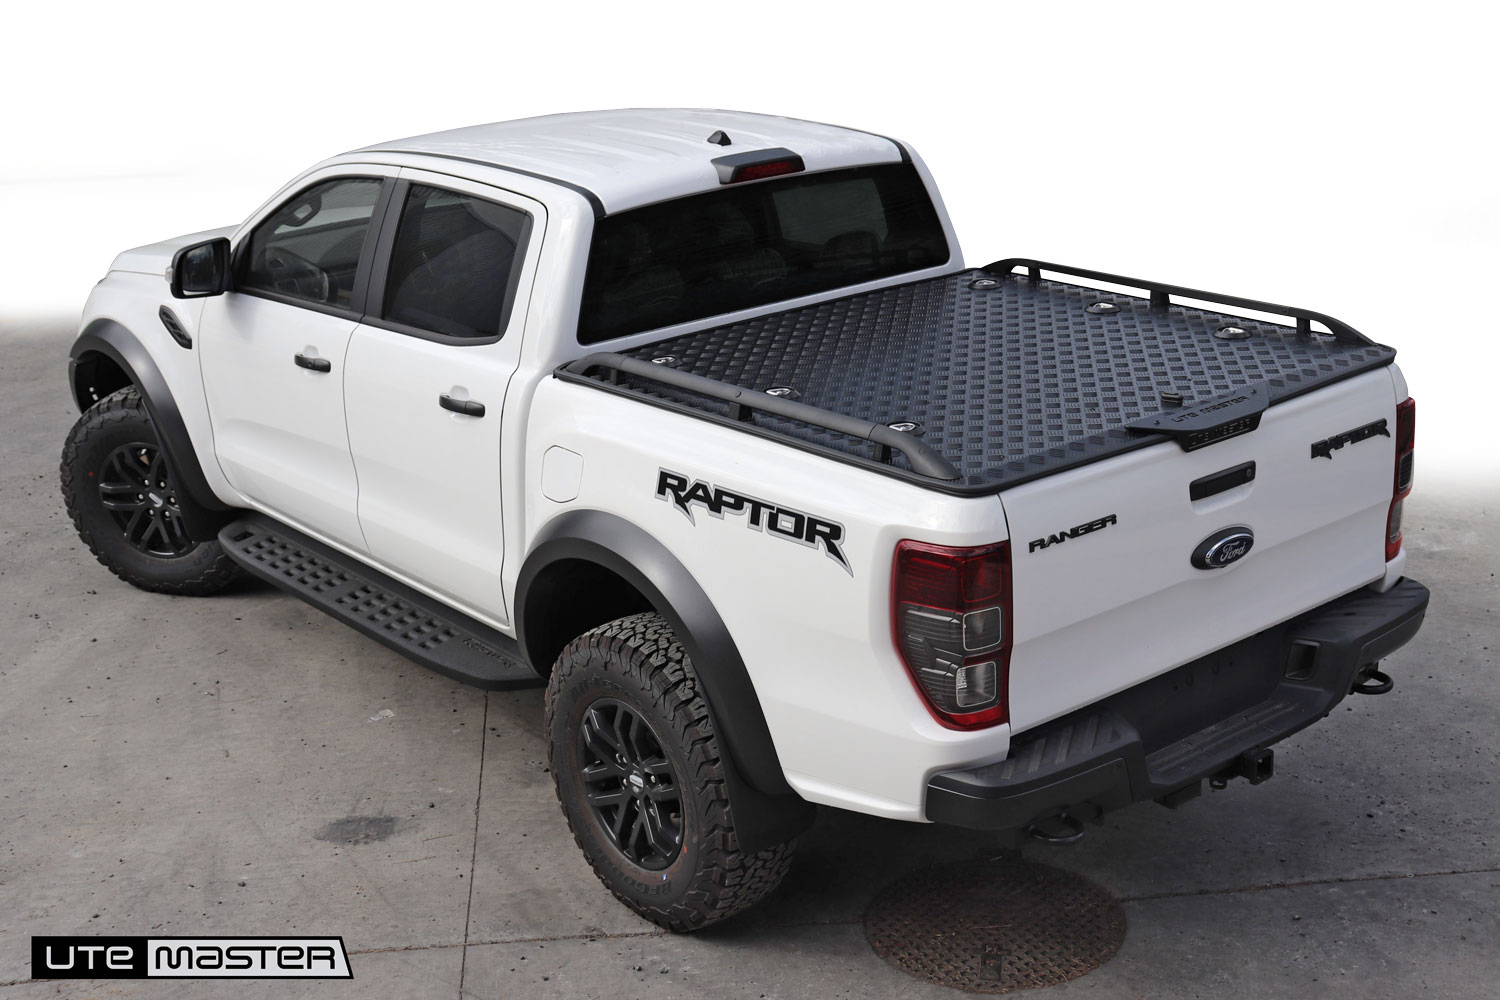 Utemaster Load-Lid to suit the Ford Ranger Raptor